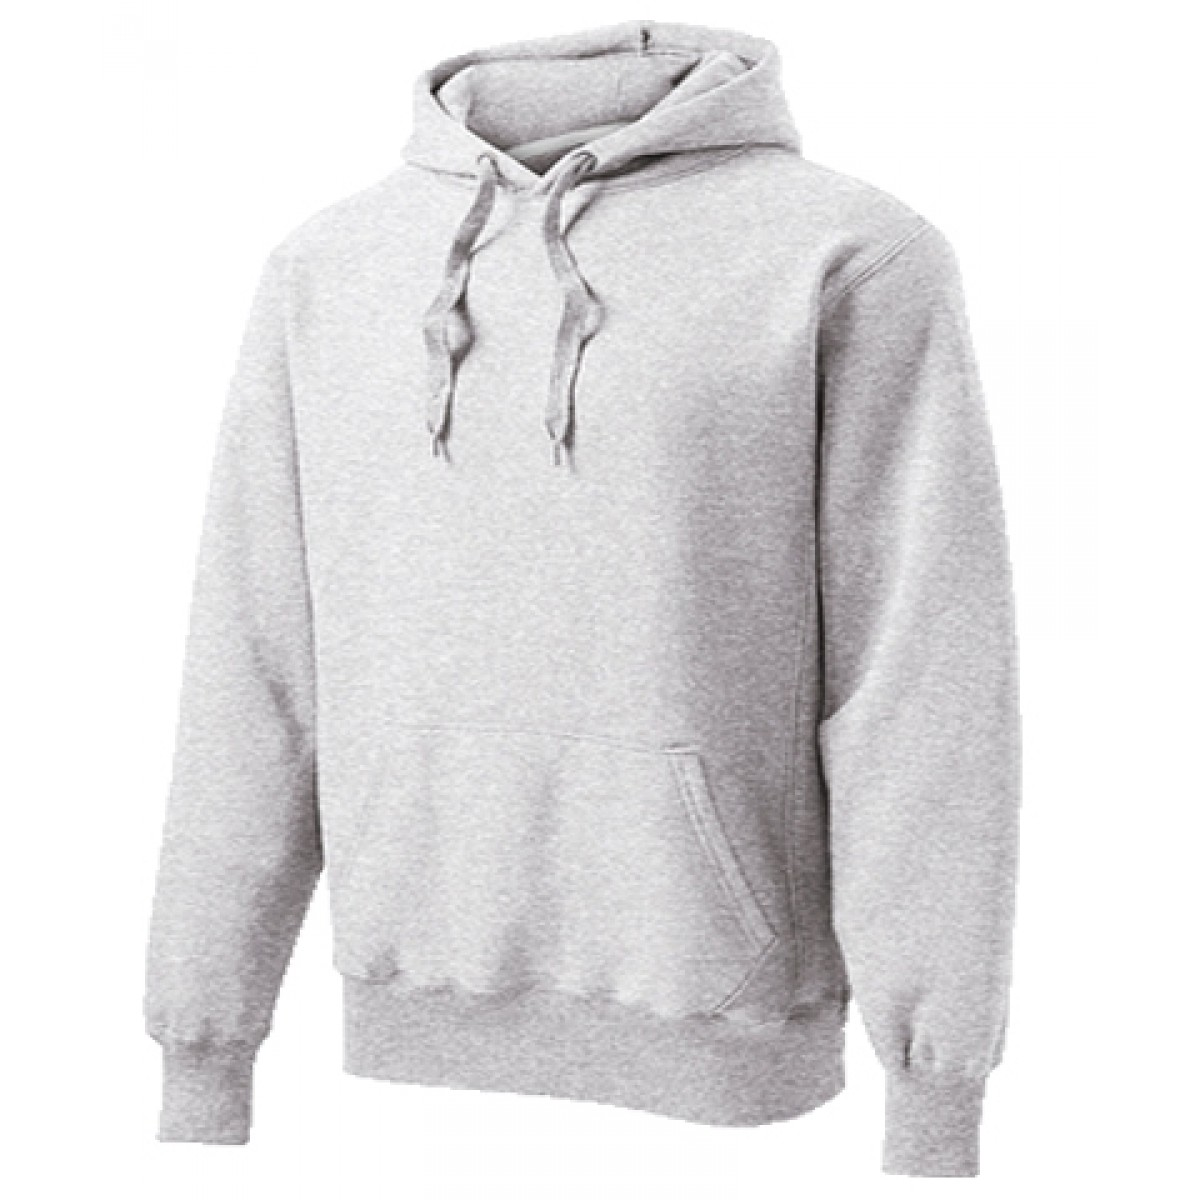 Hooded Sweatshirt 50/50 Heavy Blend Gray-Gray -XL